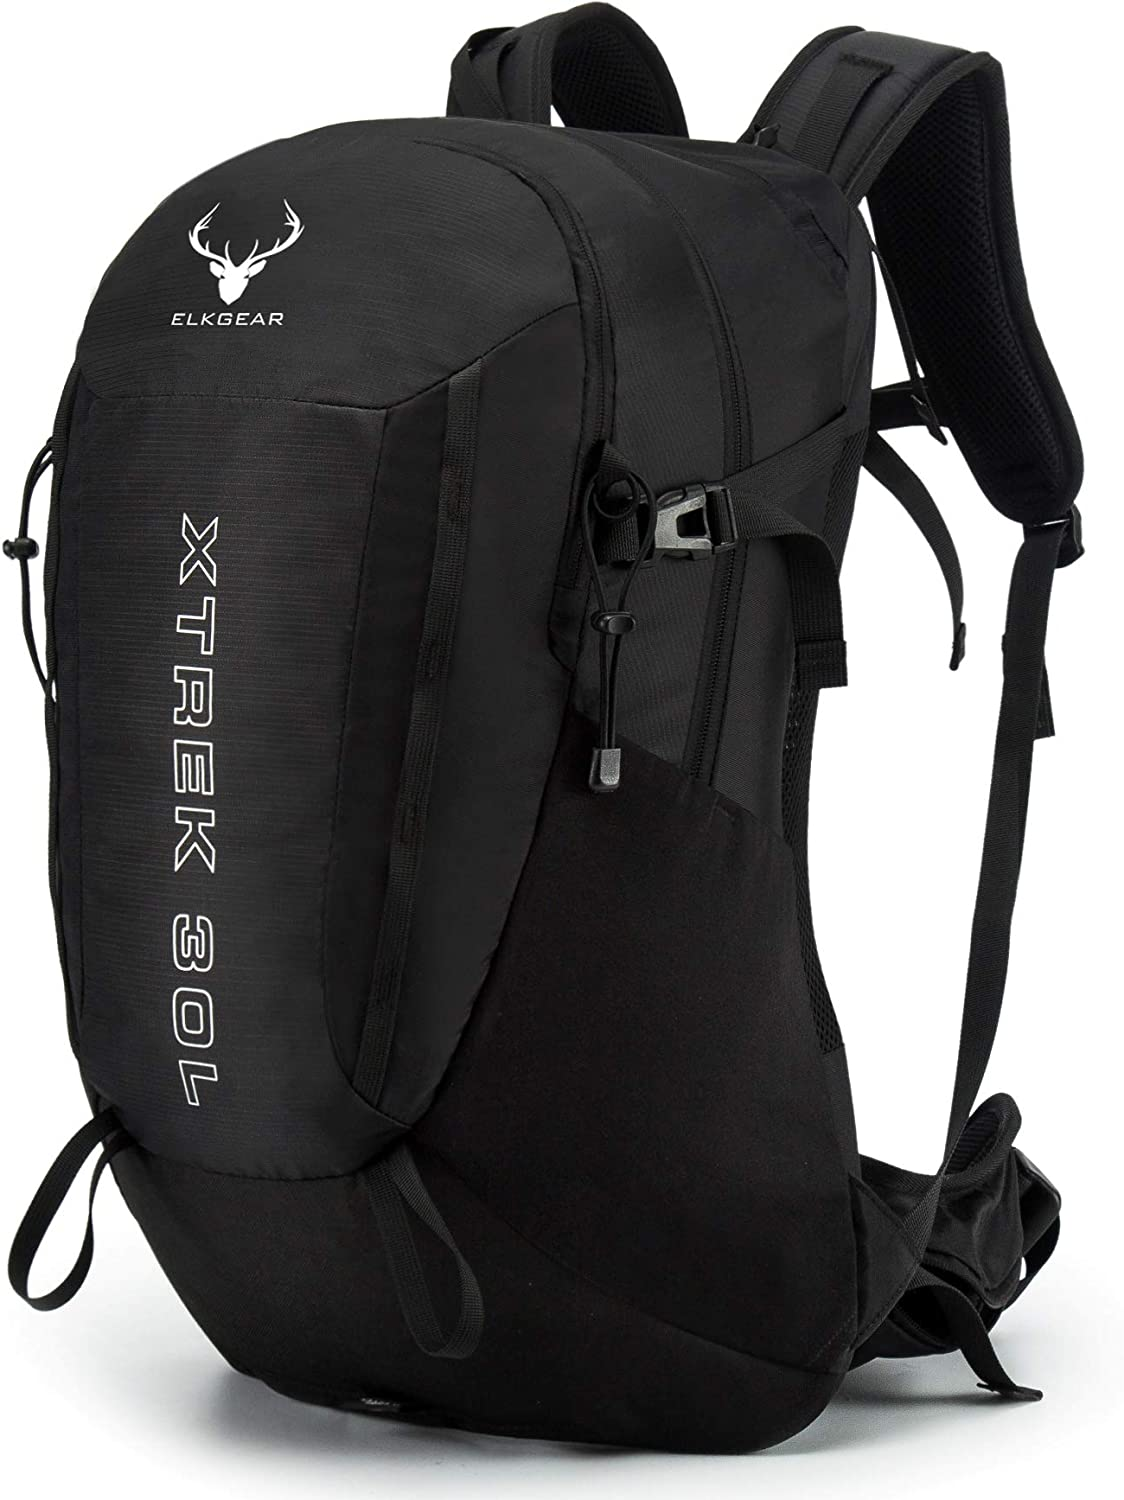 Internal Frame Hiking Backpack Lightweight and Waterproof with Rainfly